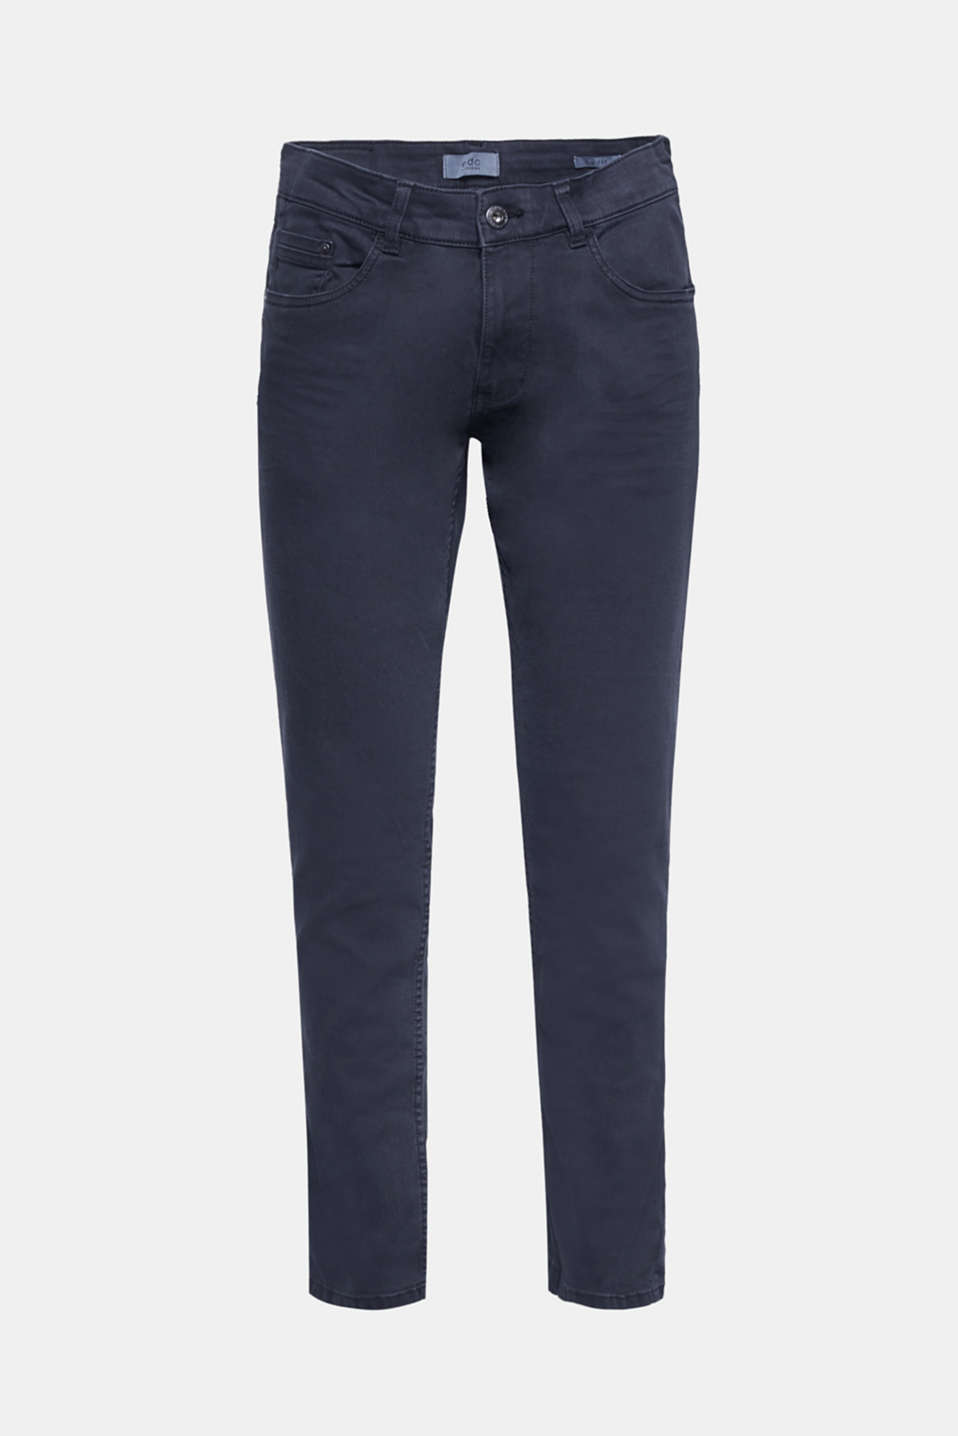 Stylish trend colours make these slim-fitting jeans a favourite for this season.